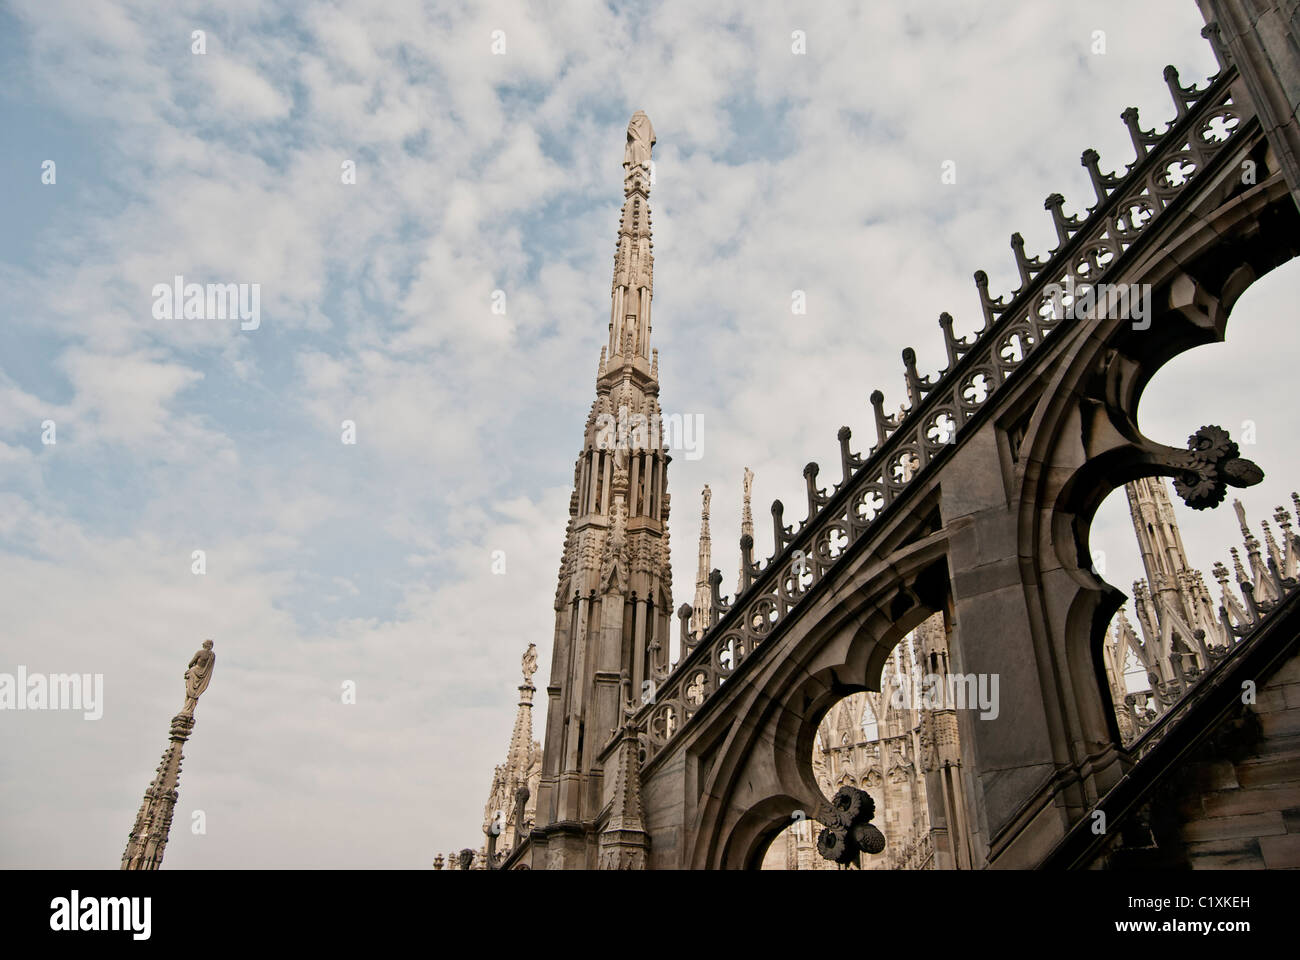 sculpture, statue, Cathedral, Milan, Duomo, roof - Stock Image